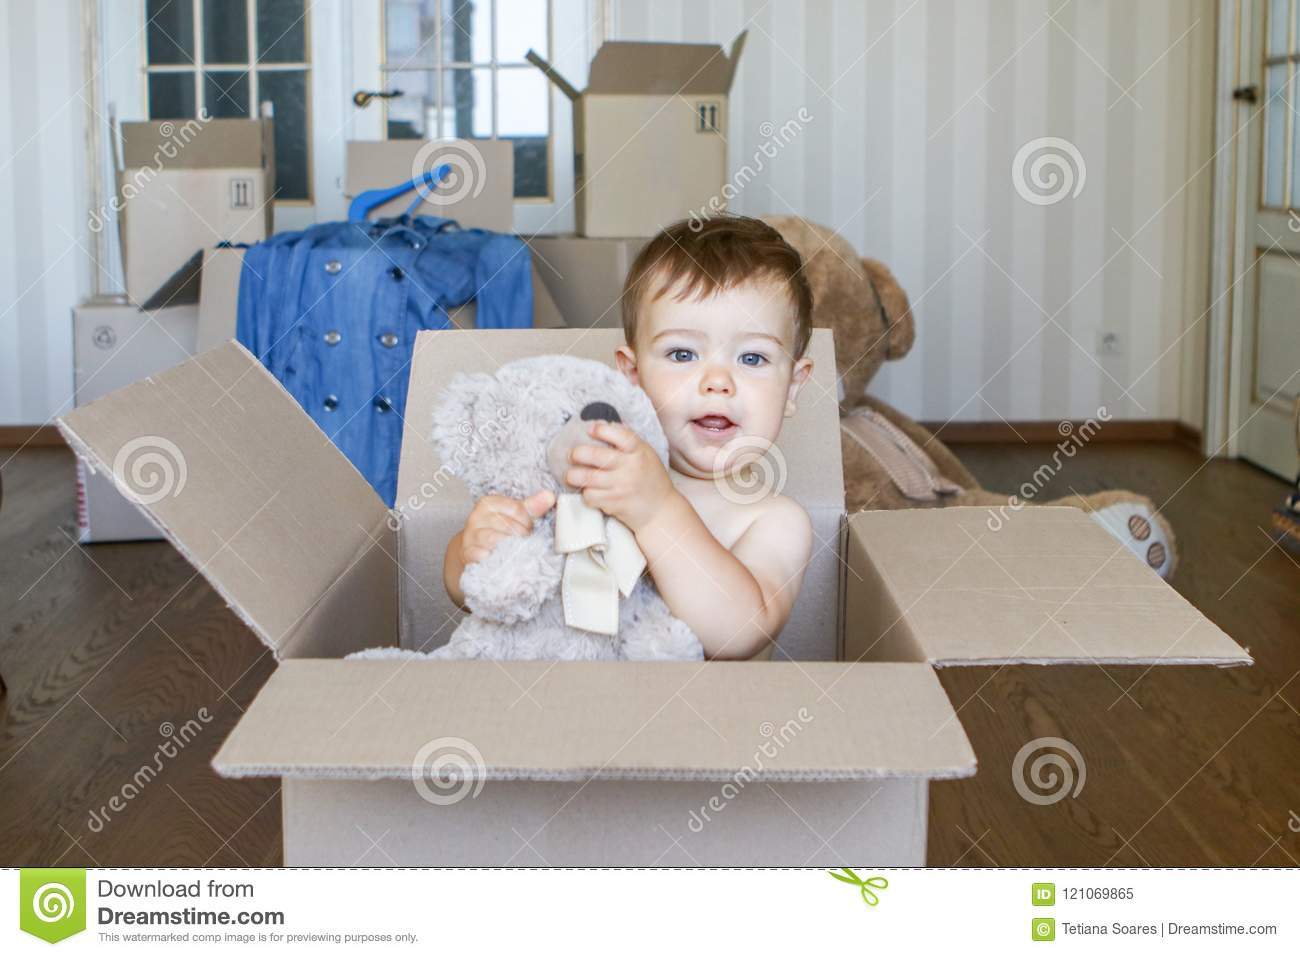 Baby Bedroom In A Box Special: Cute Little Baby Boy Inside Cardboard Box Holding And